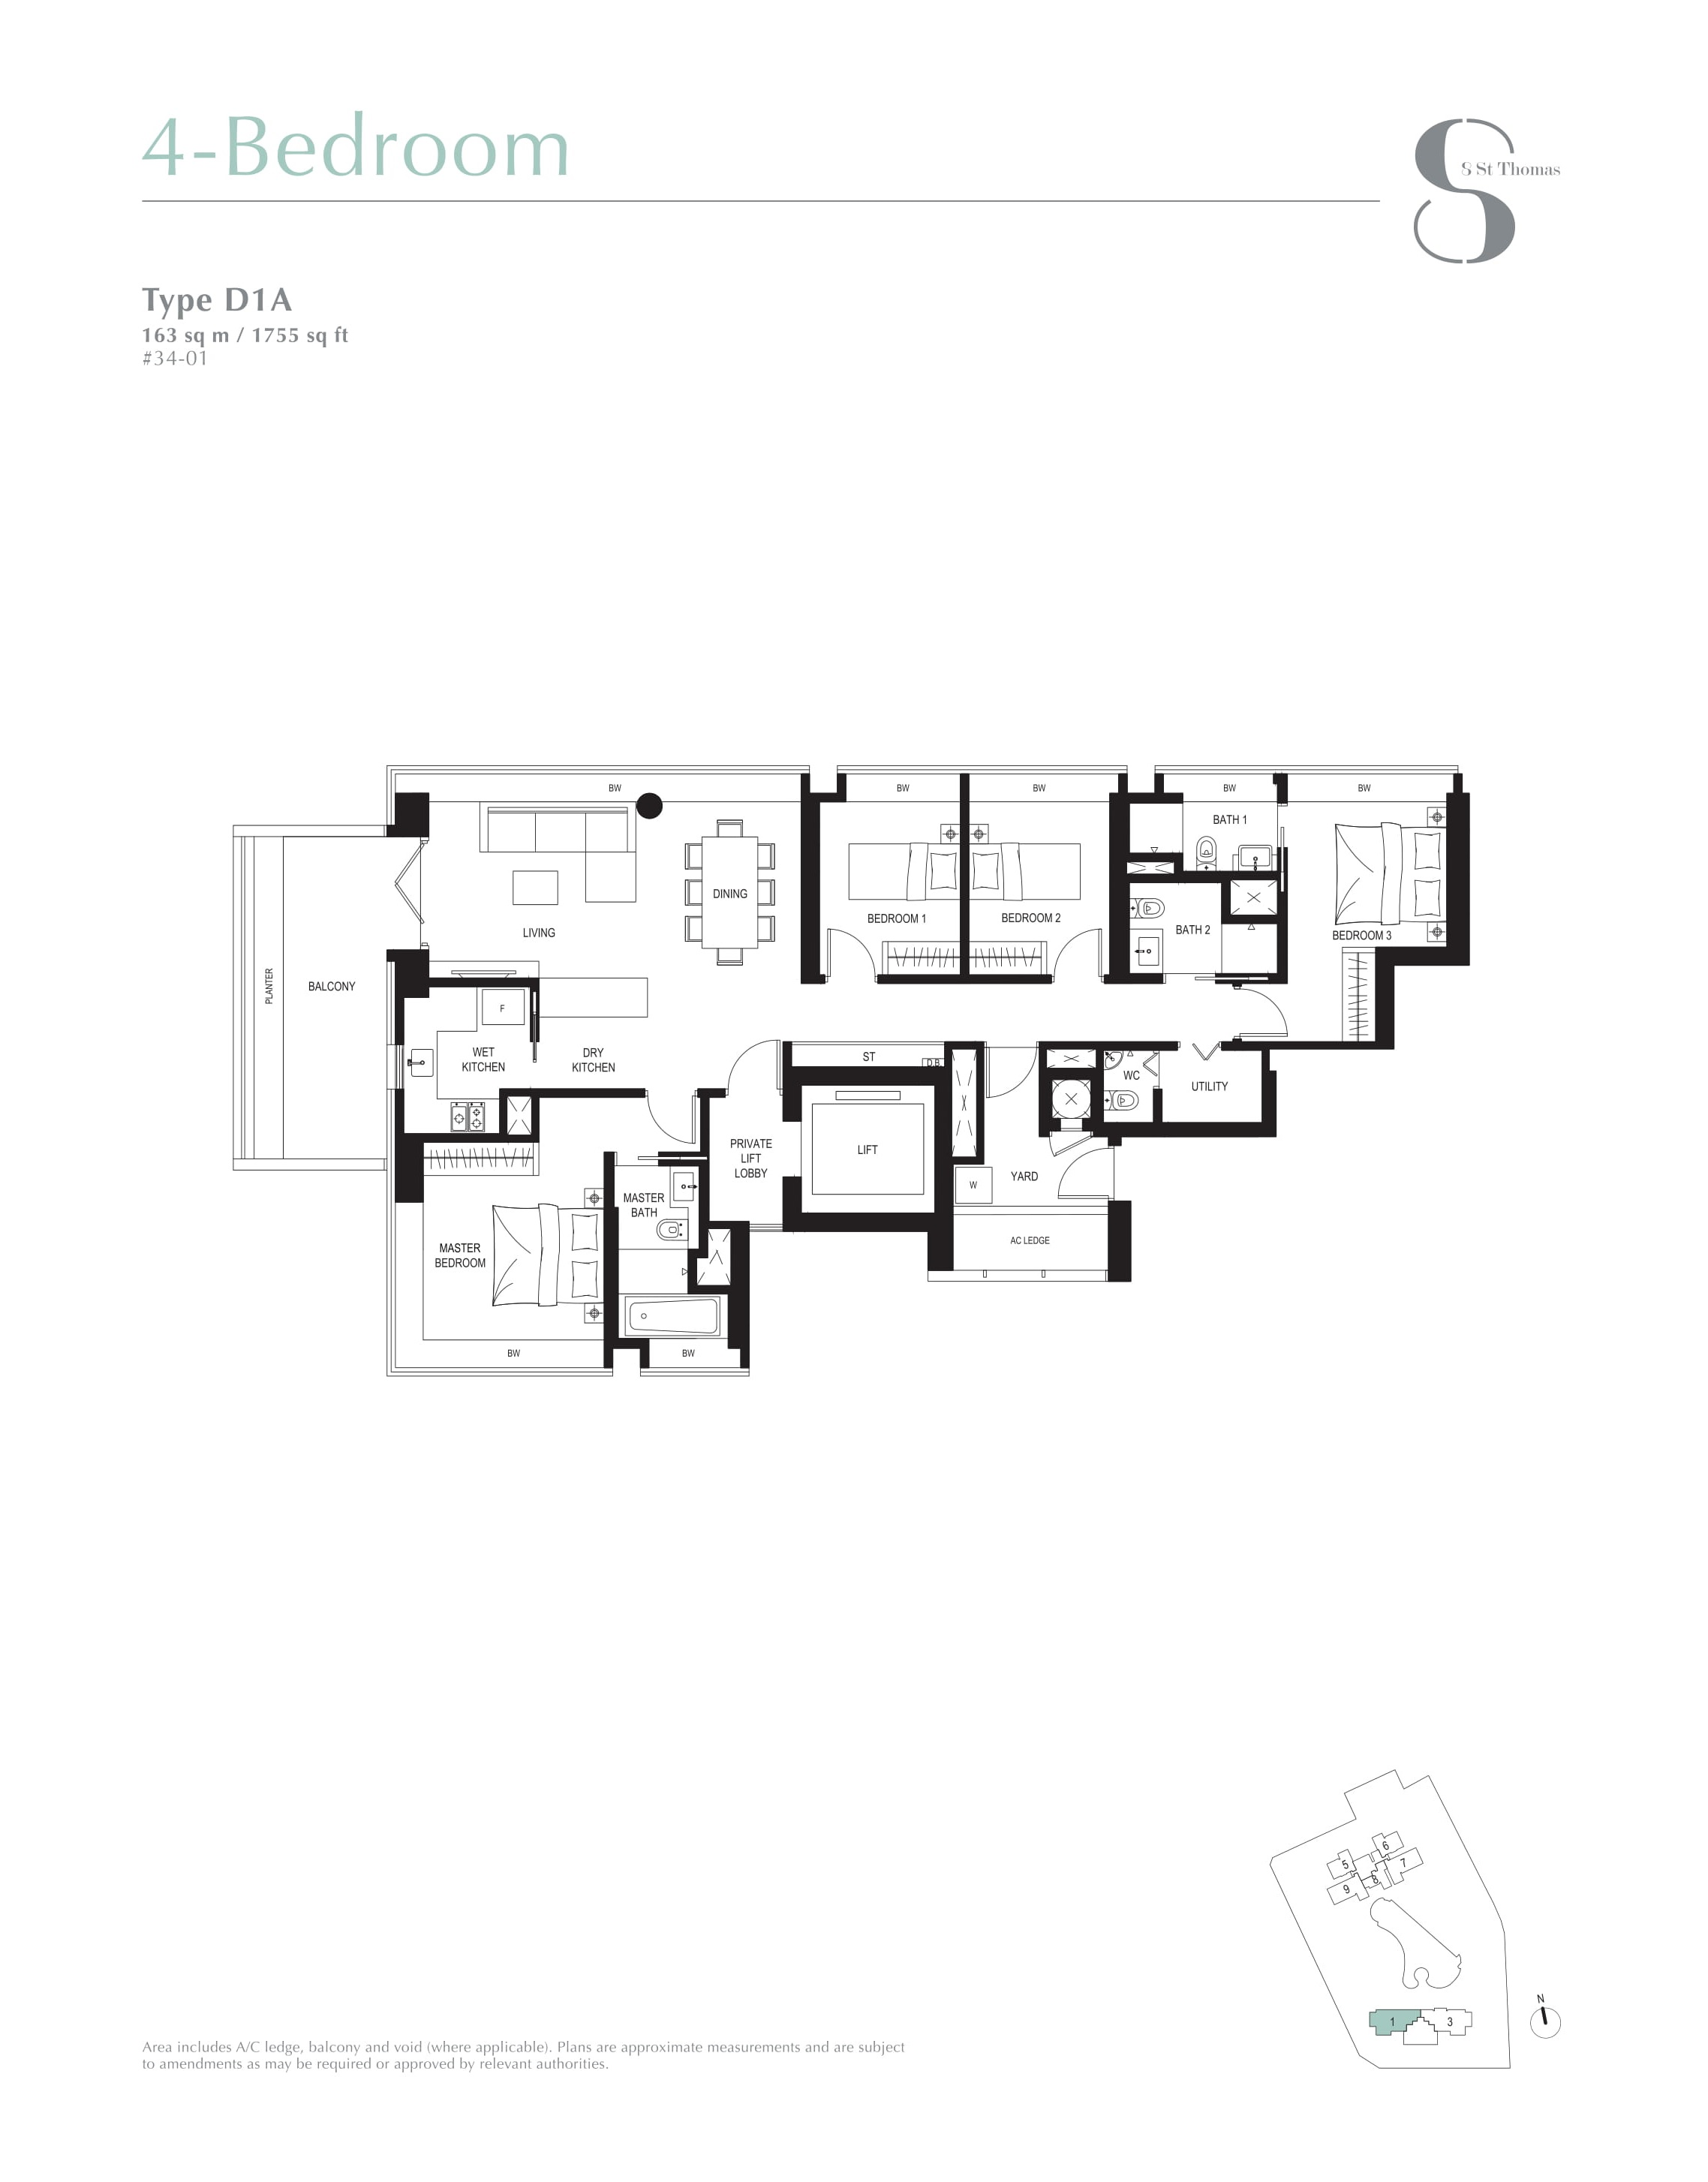 8 St Thomas 4 Bedroom Floor Plans Type D1A